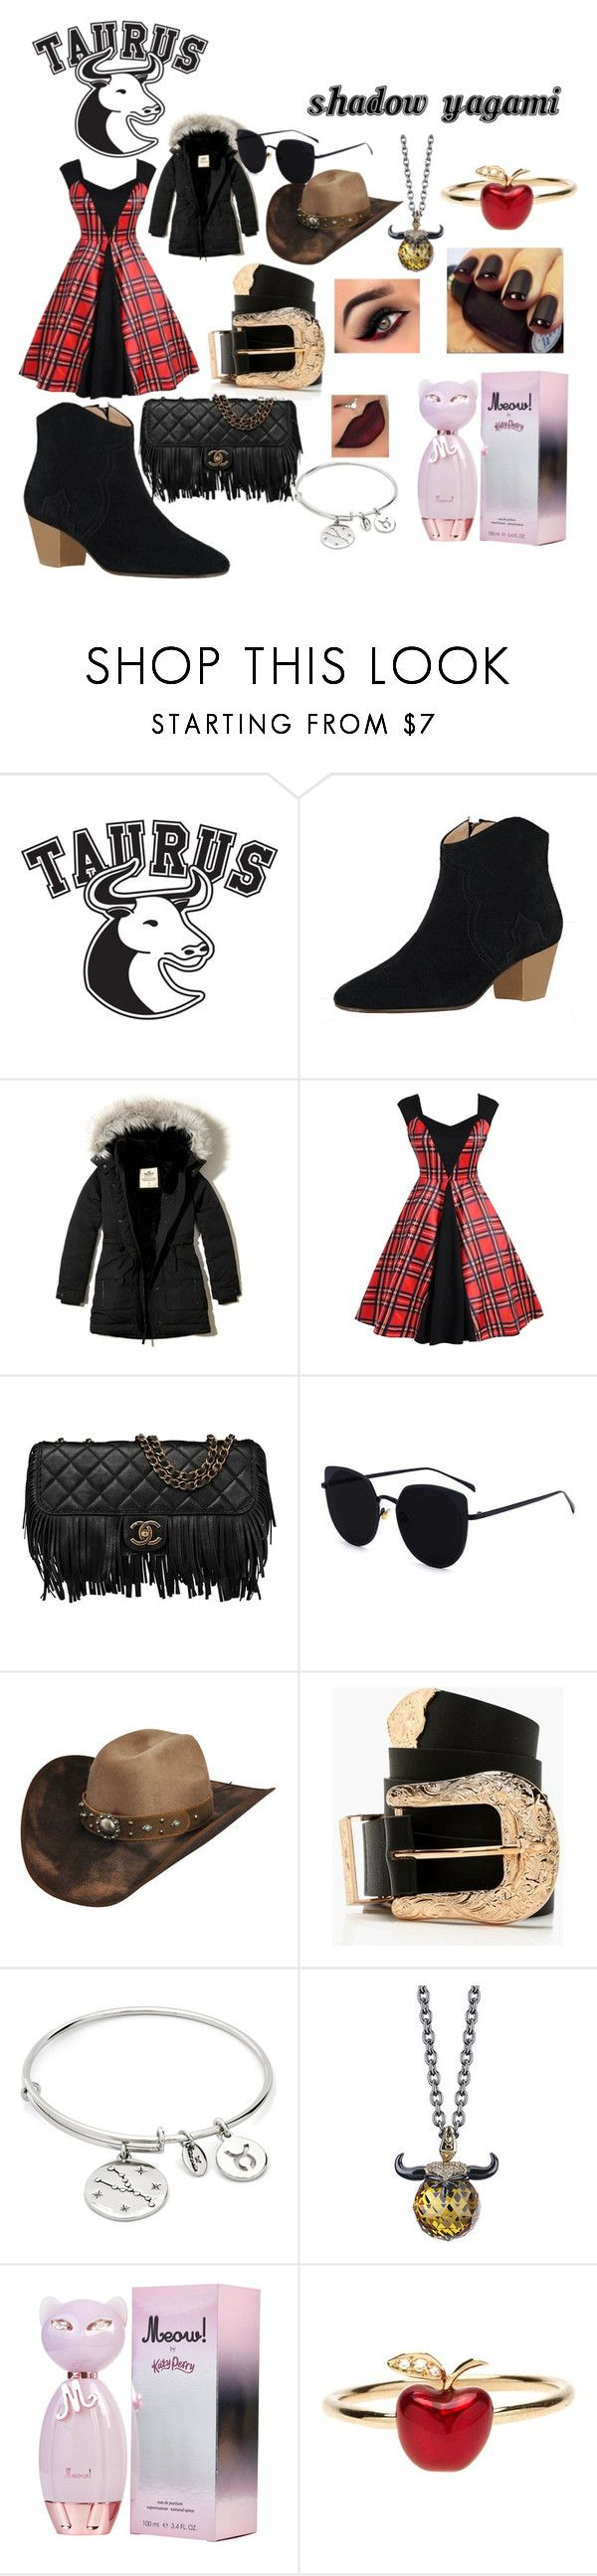 """""""Taurus, Sole-Mate Style"""" by ticciboby-thekiller-drowned ❤ liked on Polyvore featuring Good American, Hollister Co., Chanel, Bailey Western, Boohoo, Chrysalis, Stephen Webster and Alison Lou"""